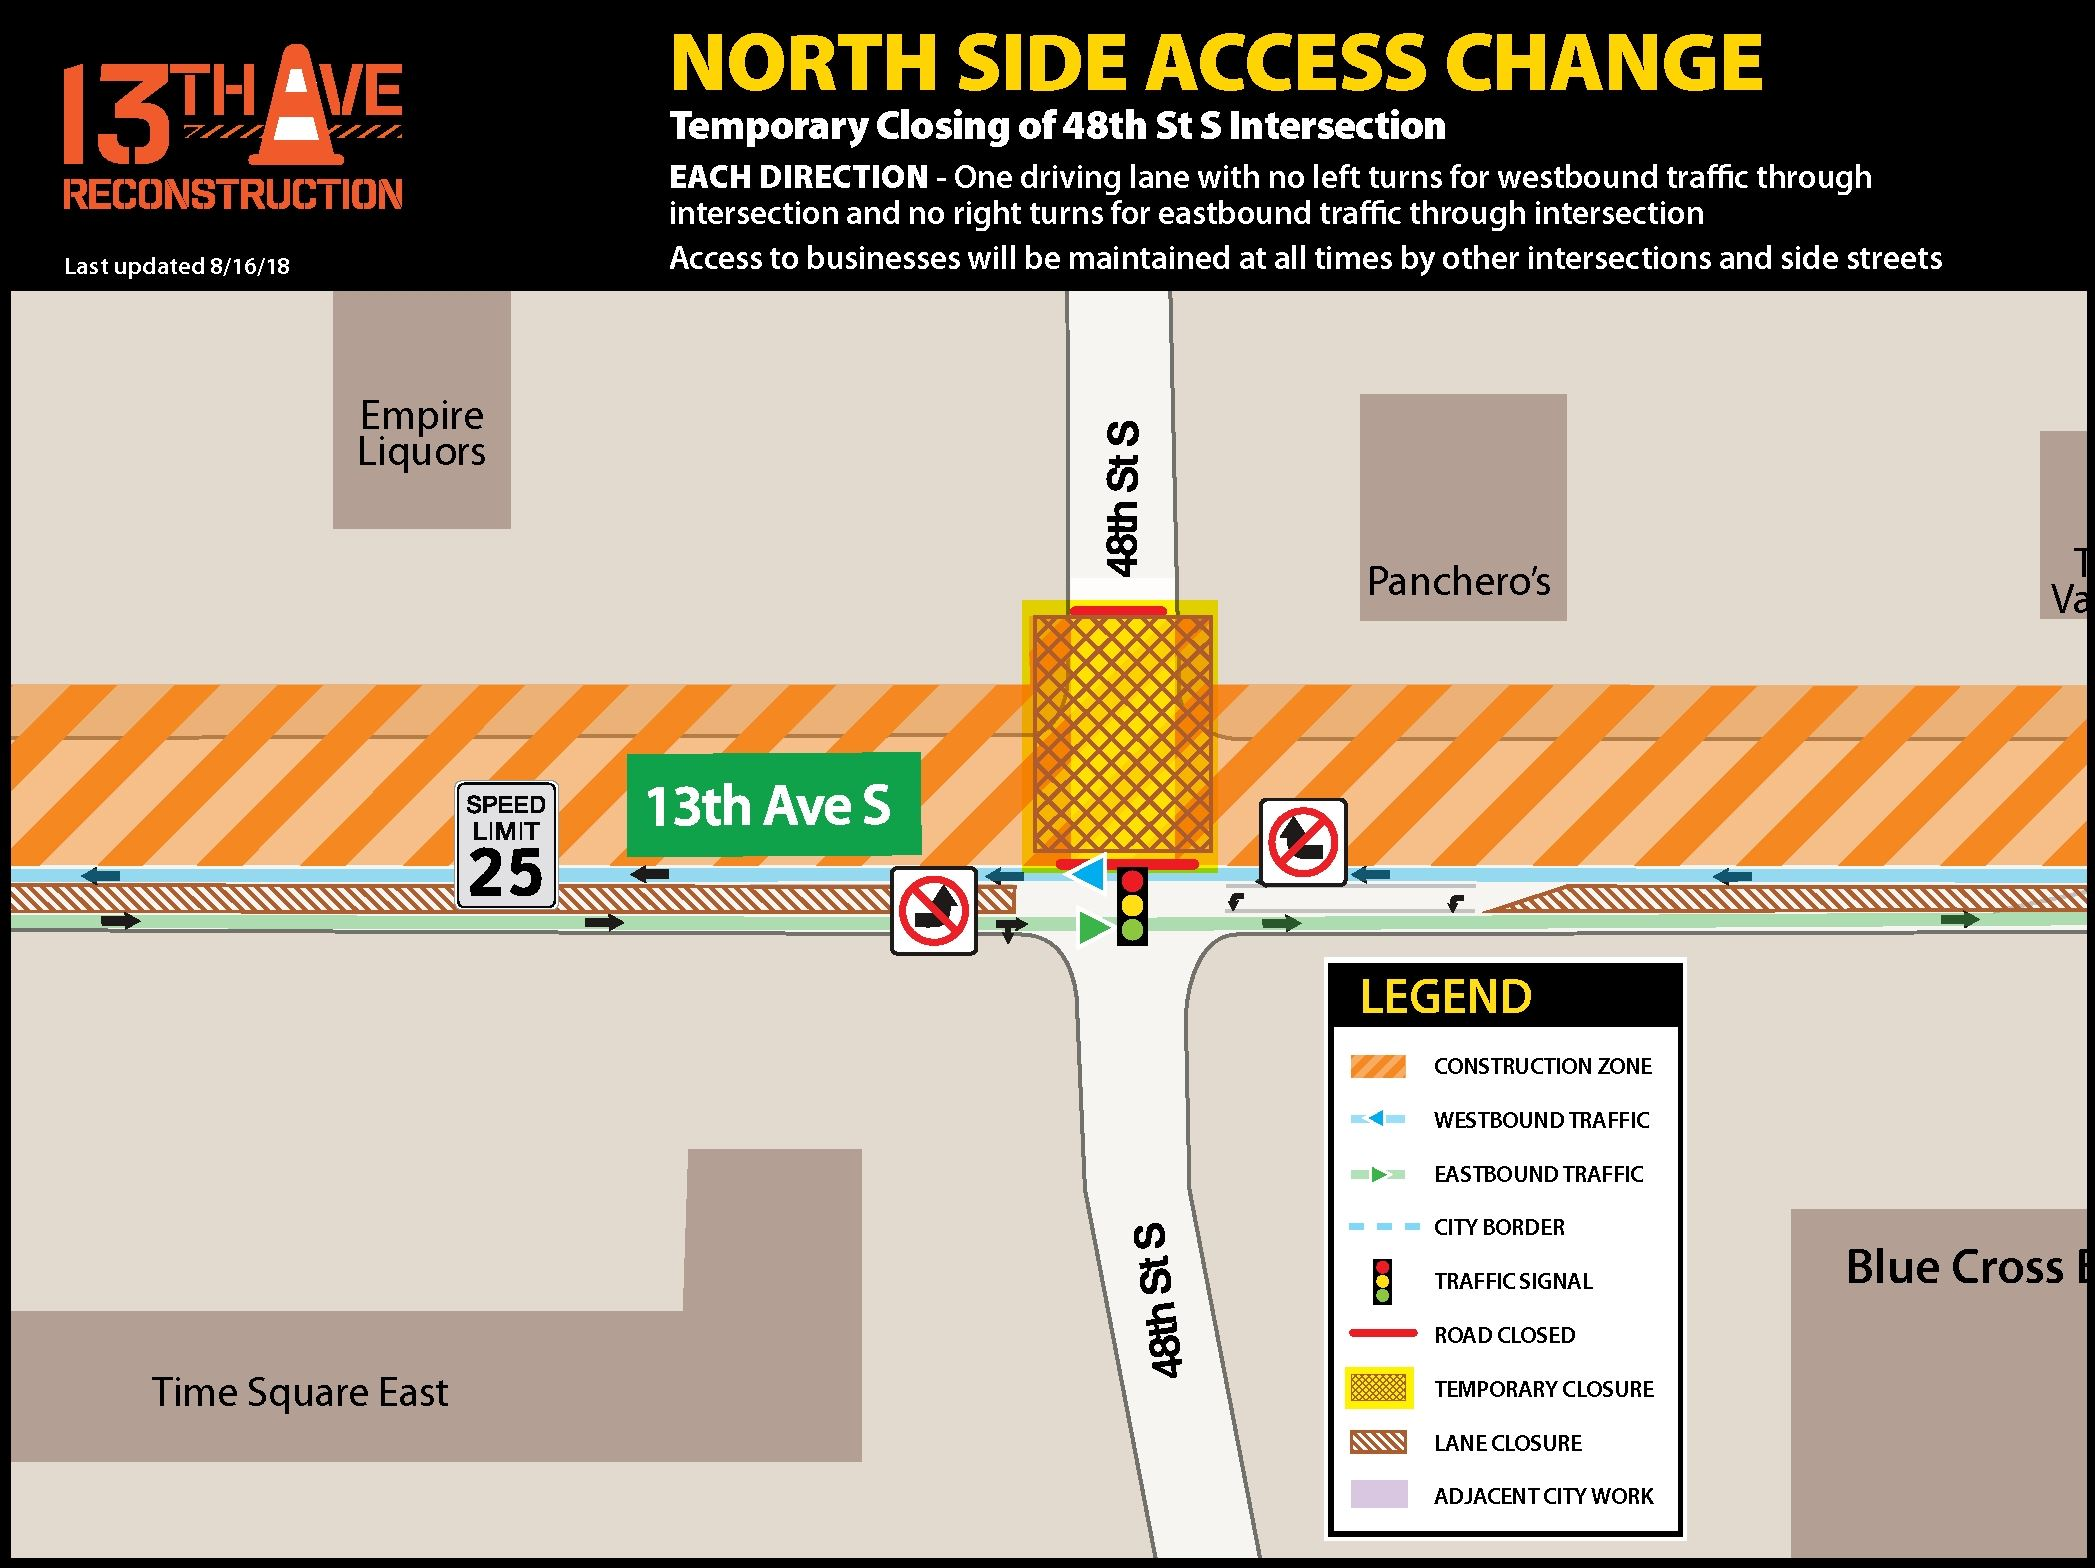 Temporary closing of 48th St. S. intersection